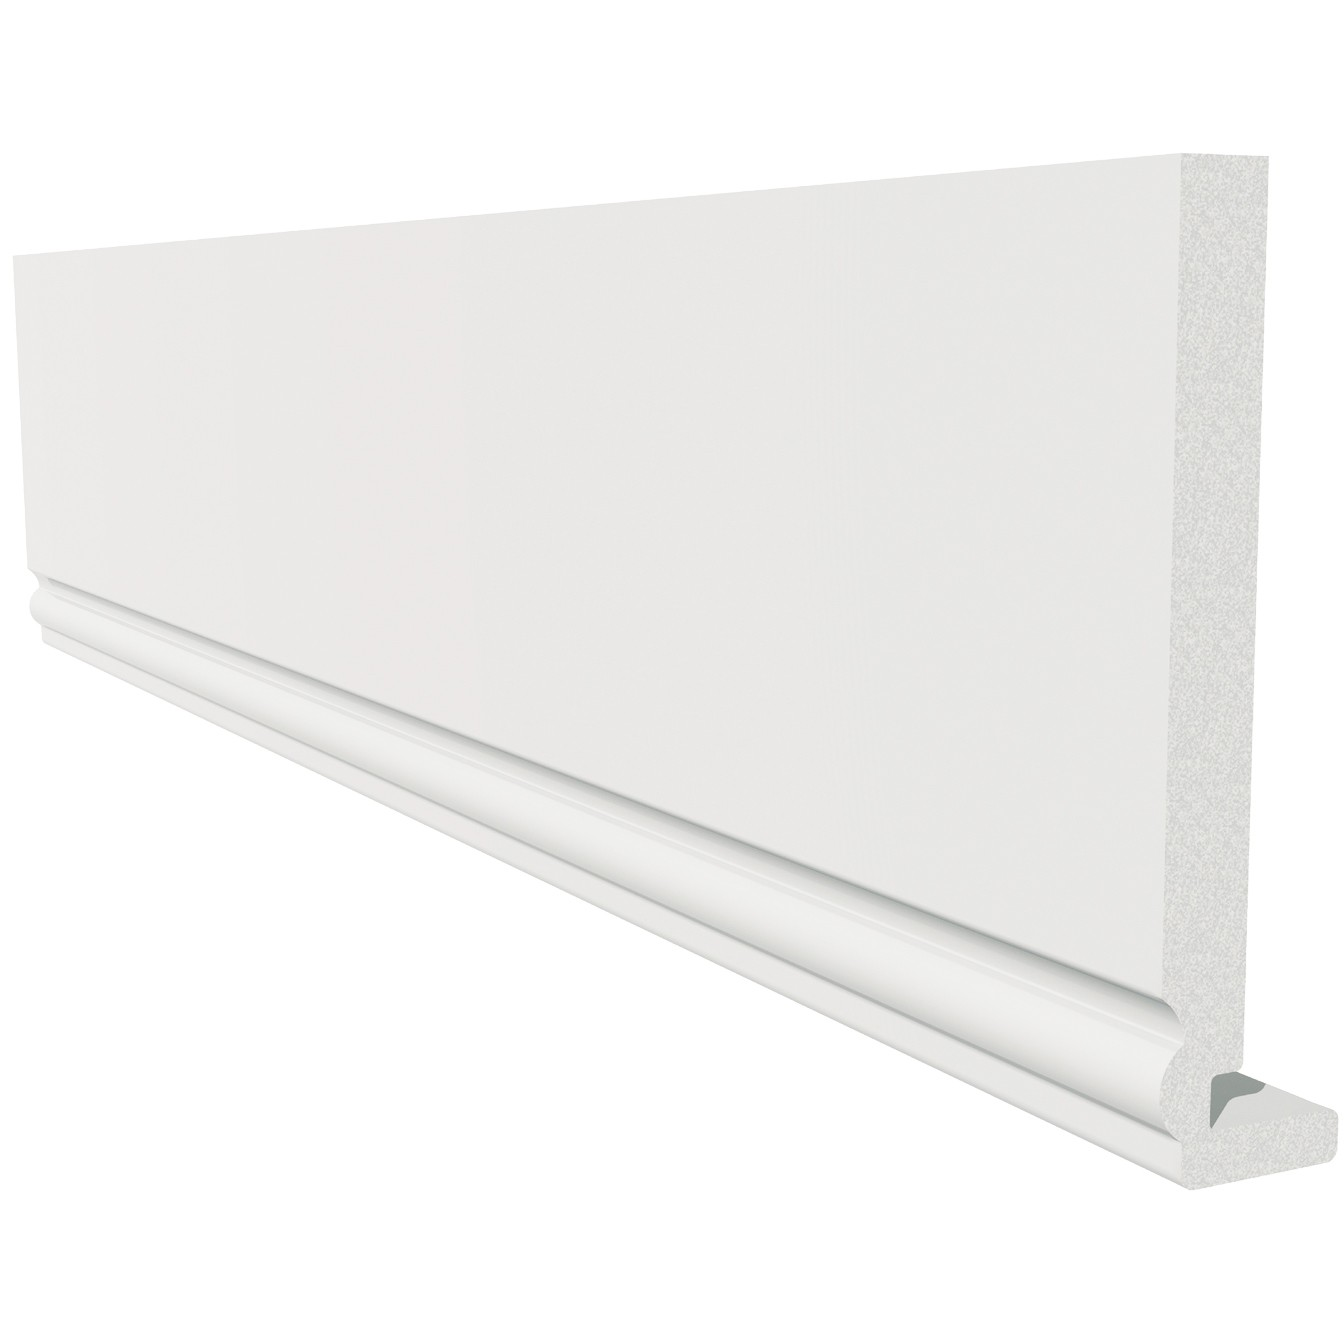 Fascia Board Fmo150 Freefoam Magnum Ogee 18mm Fascia Board White 150mm 5 Metre